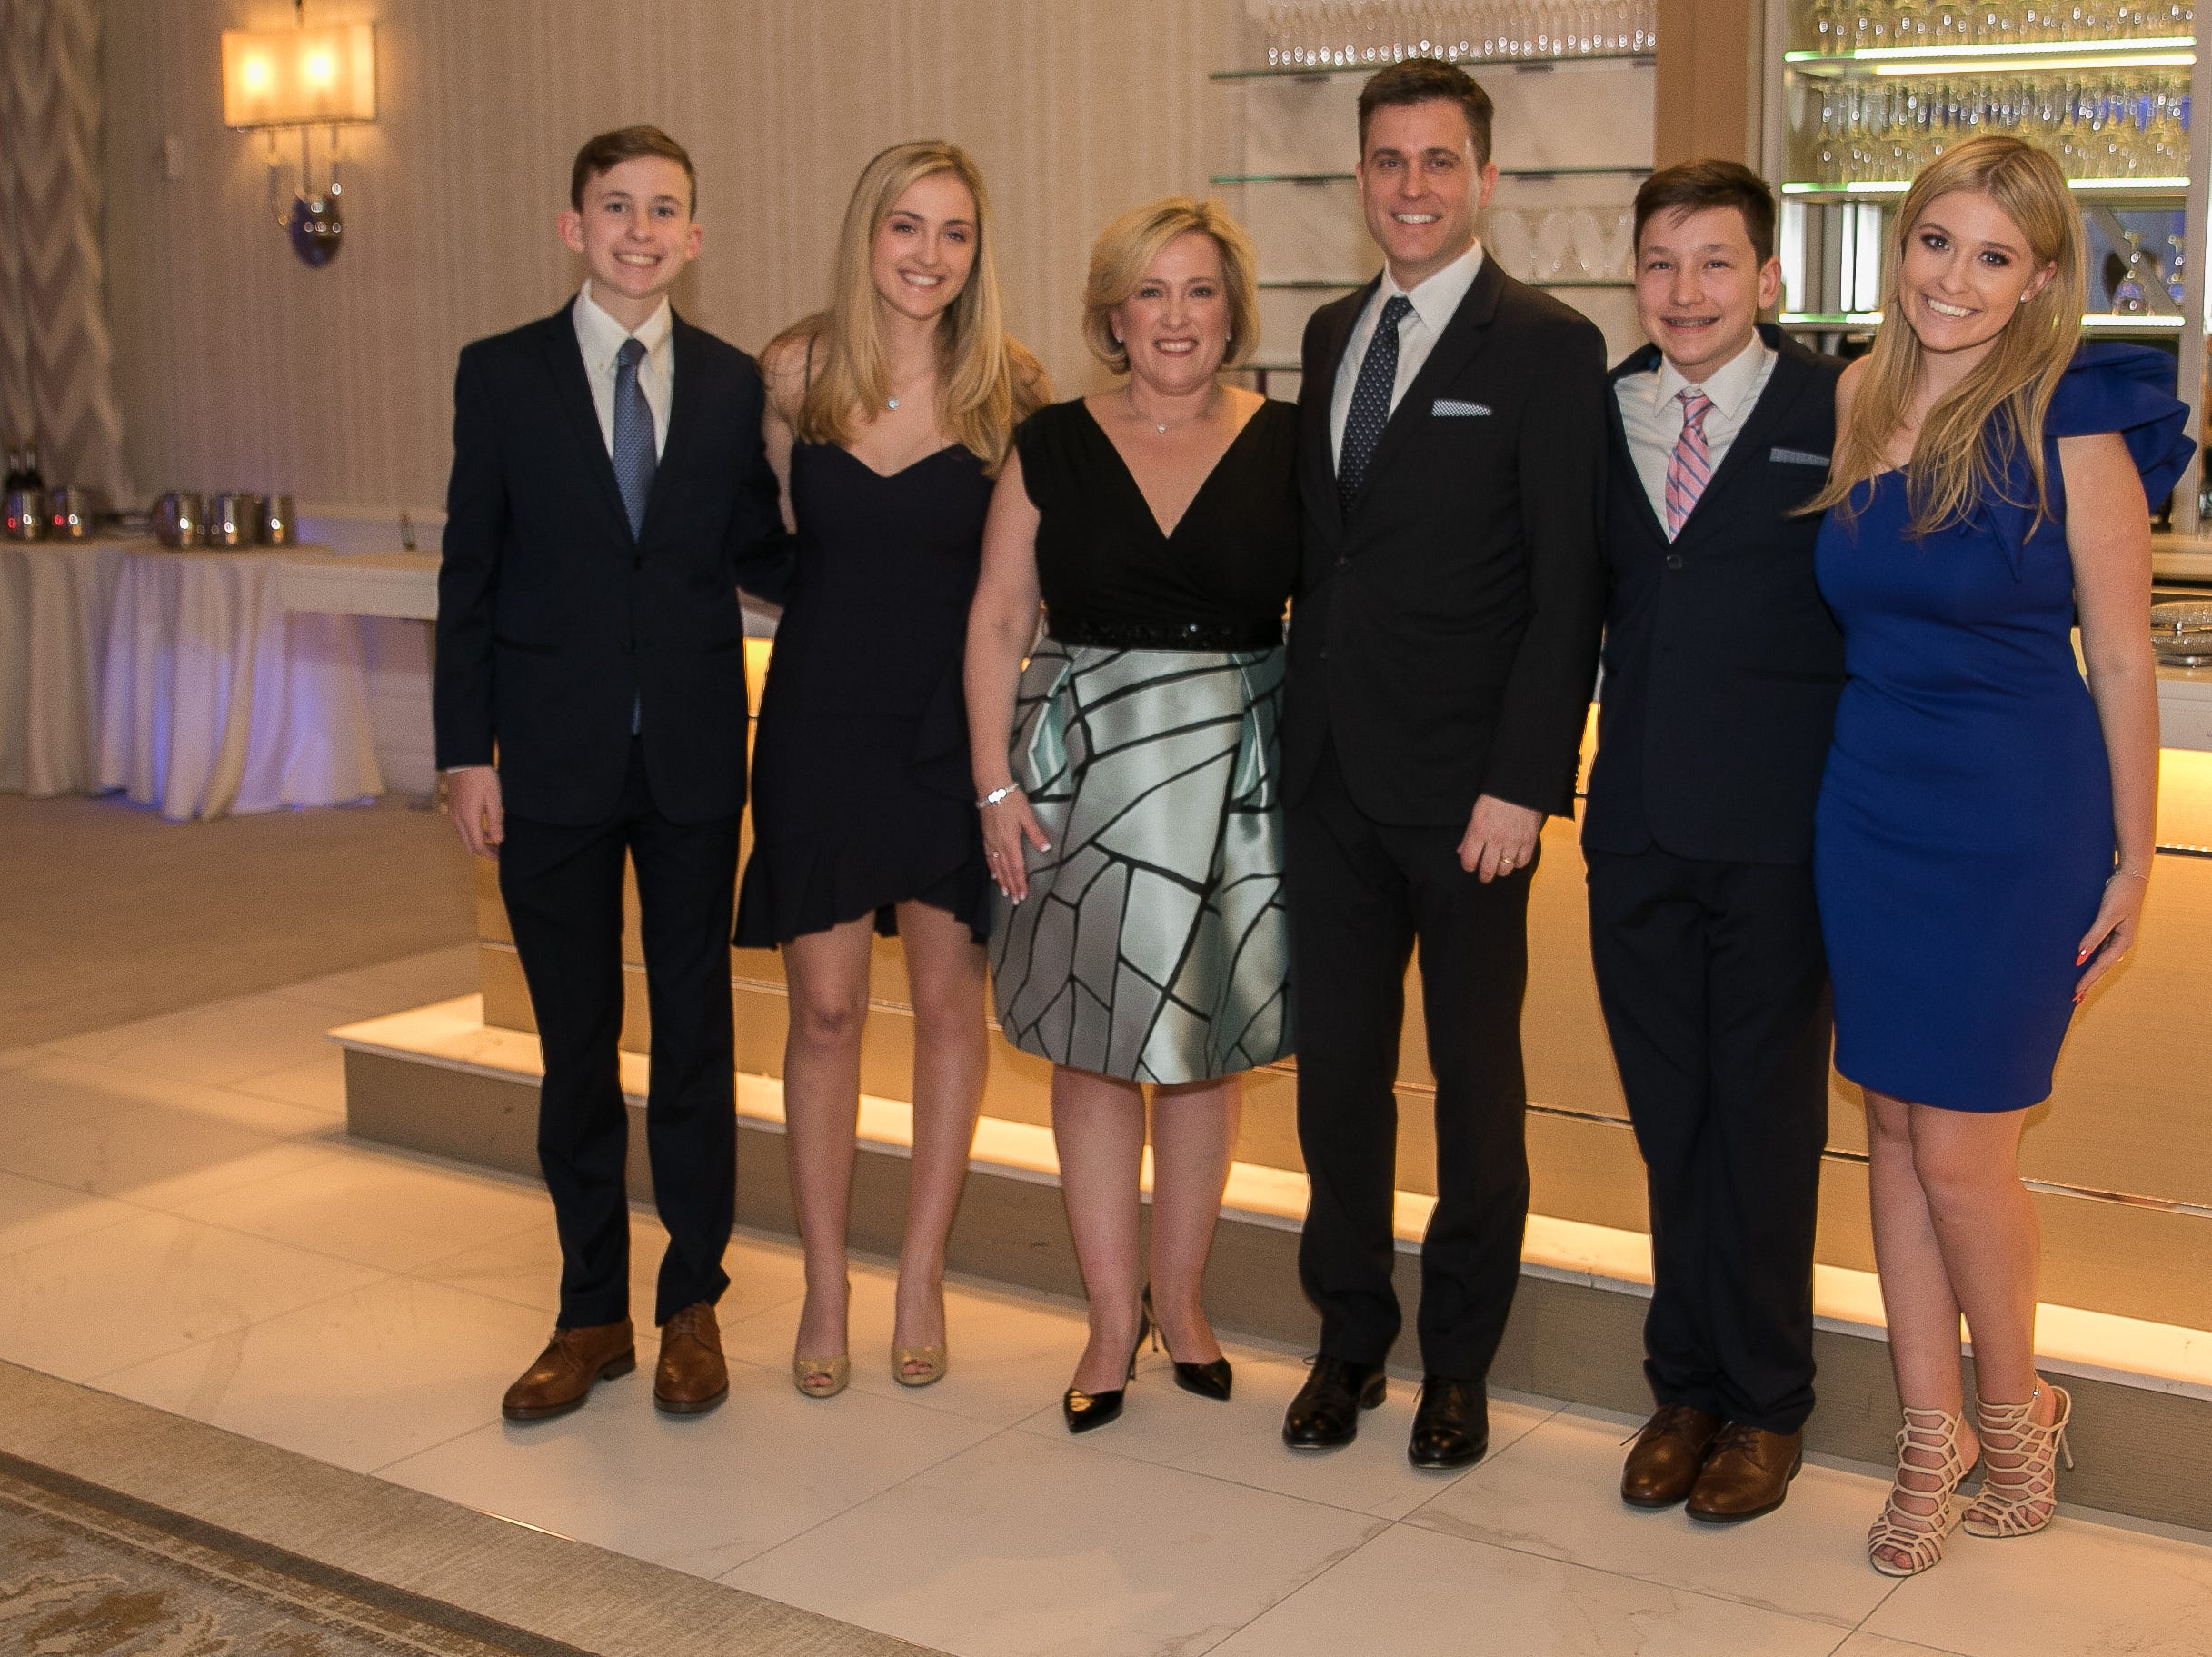 Honoree- Colleen Corbett Staff with her husband and children. Academy of The Holy Angels held their 22nd annual Angelic Evening at Edgewood Country Club in RiverVale. 03/22/2019